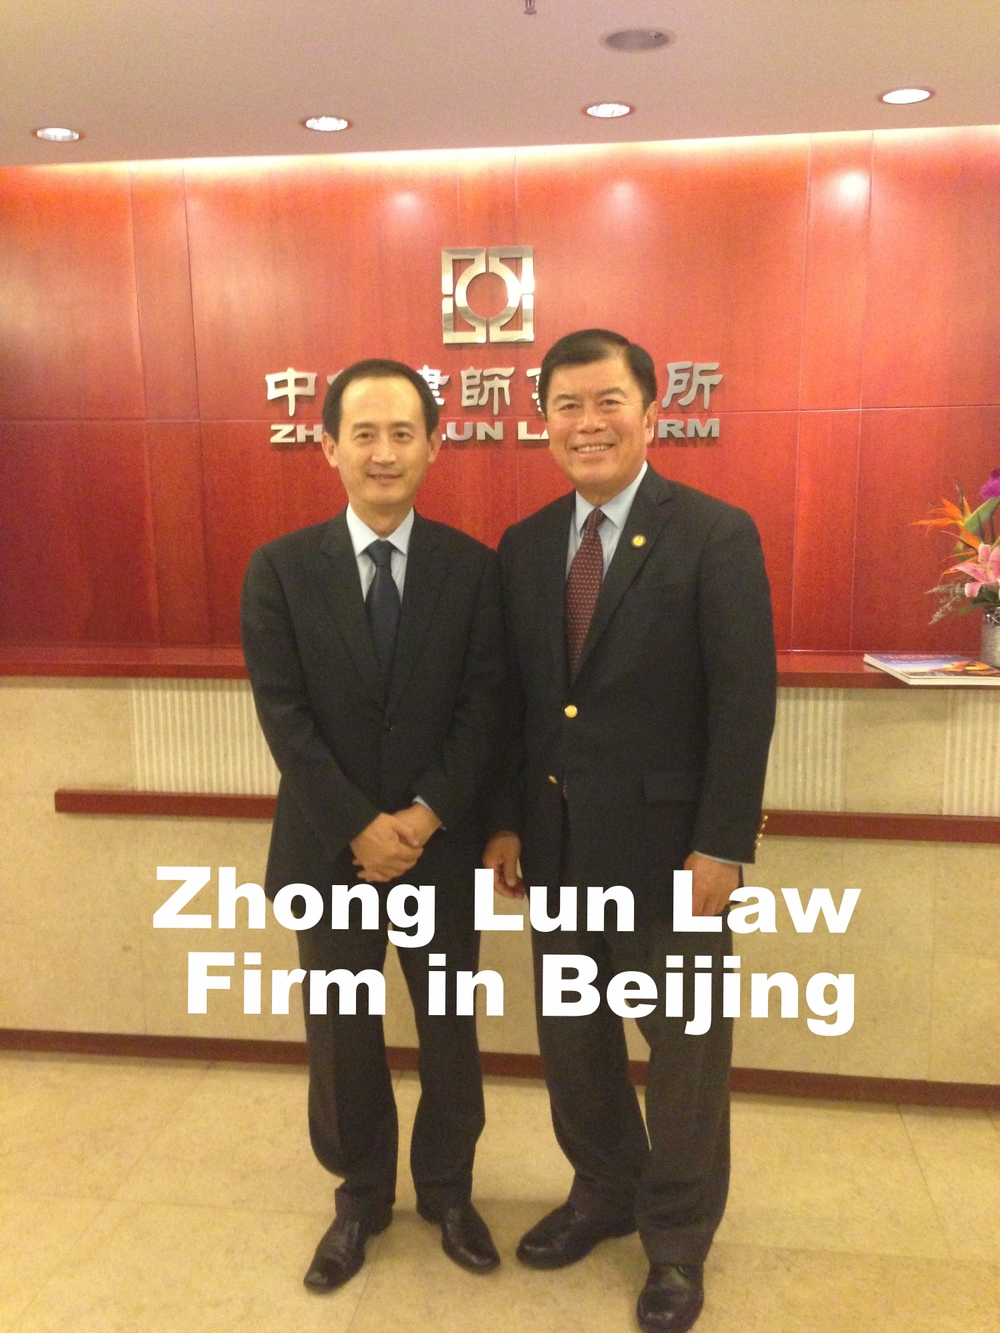 David Wu with Zhong Lun Law Firm in Beijing